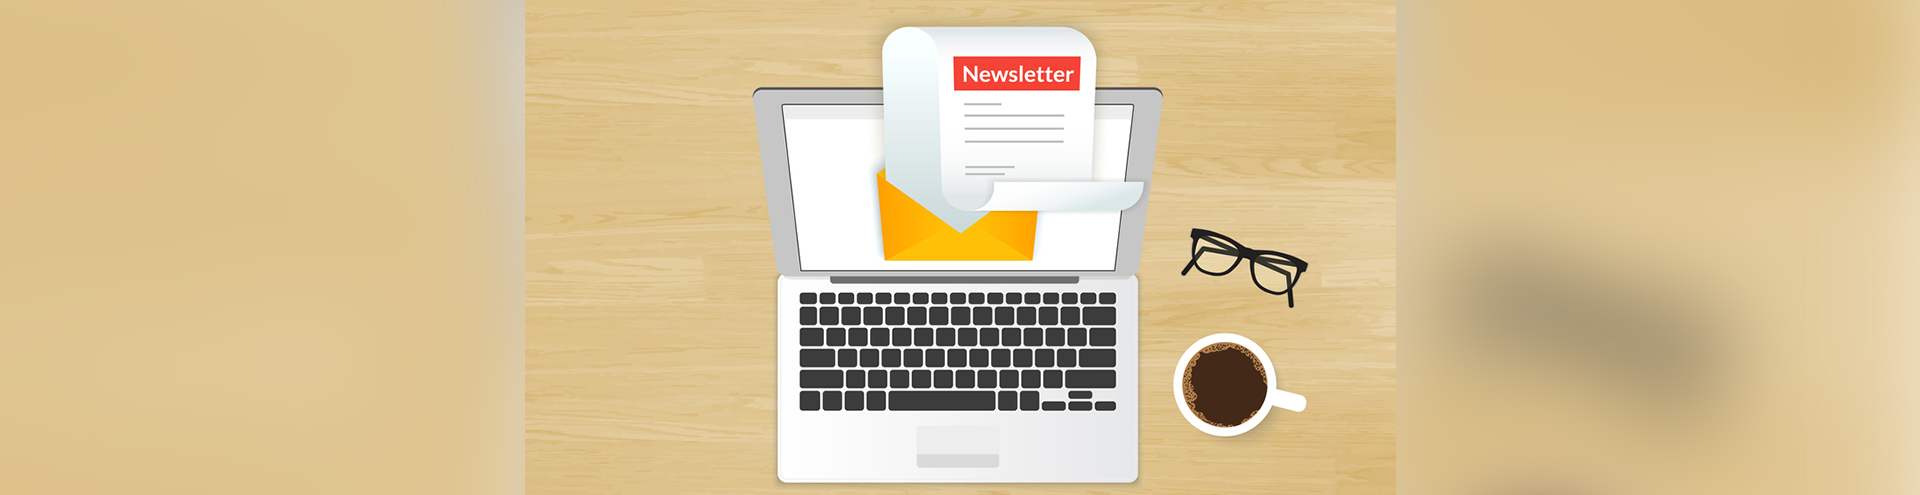 How to grow sales with Email Newsletters?